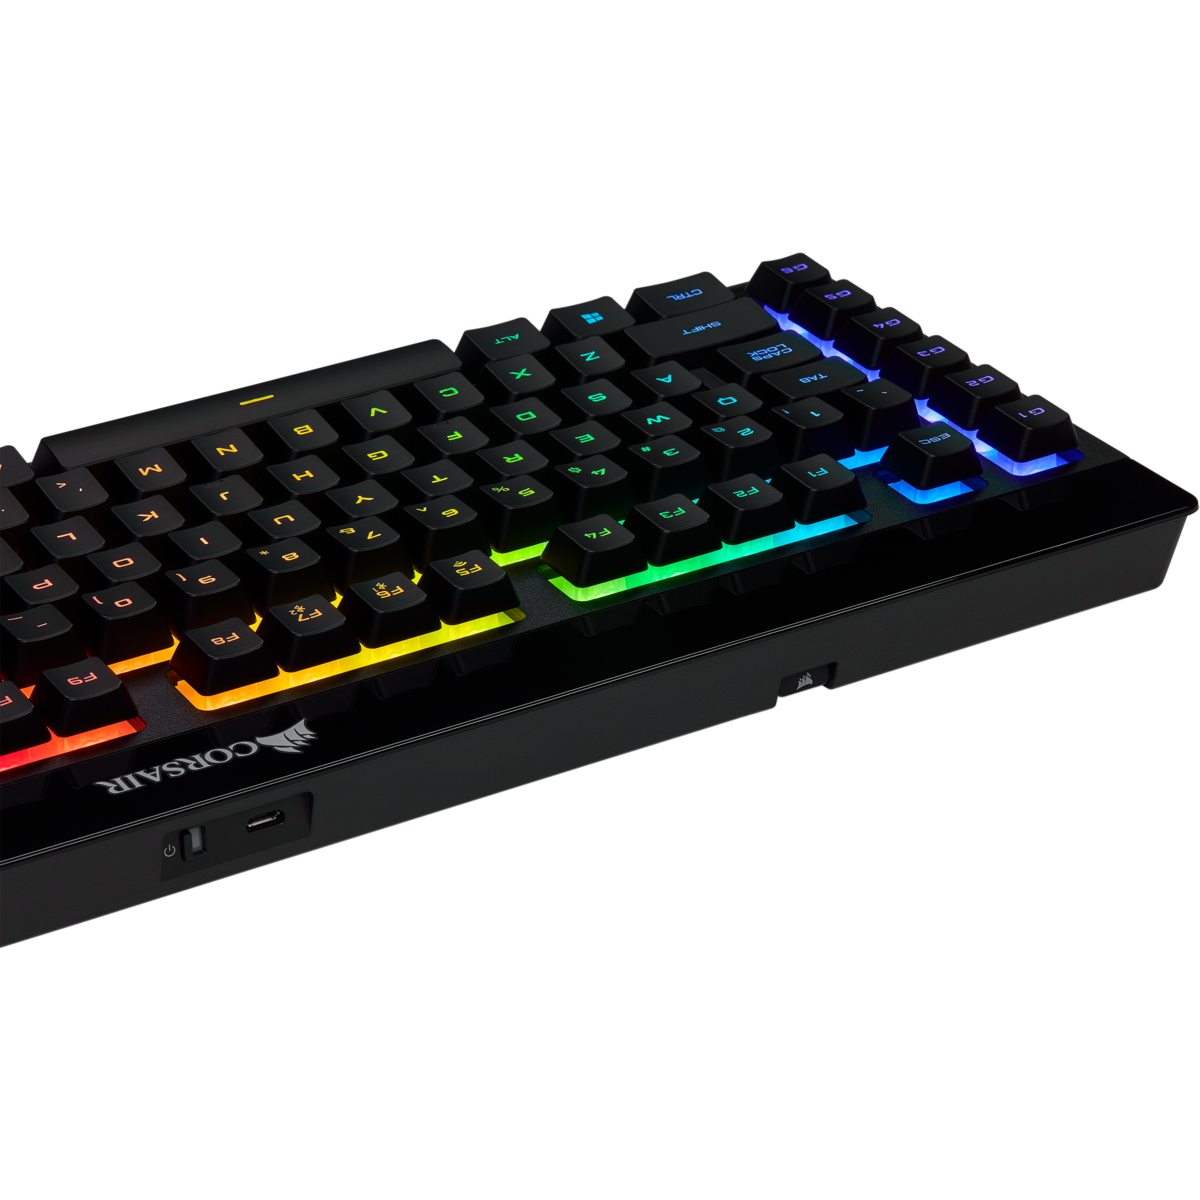 Teclado Gamer Corsair 57 RGB WIRELESS, Backlit RGB LED CH-925C015-NA